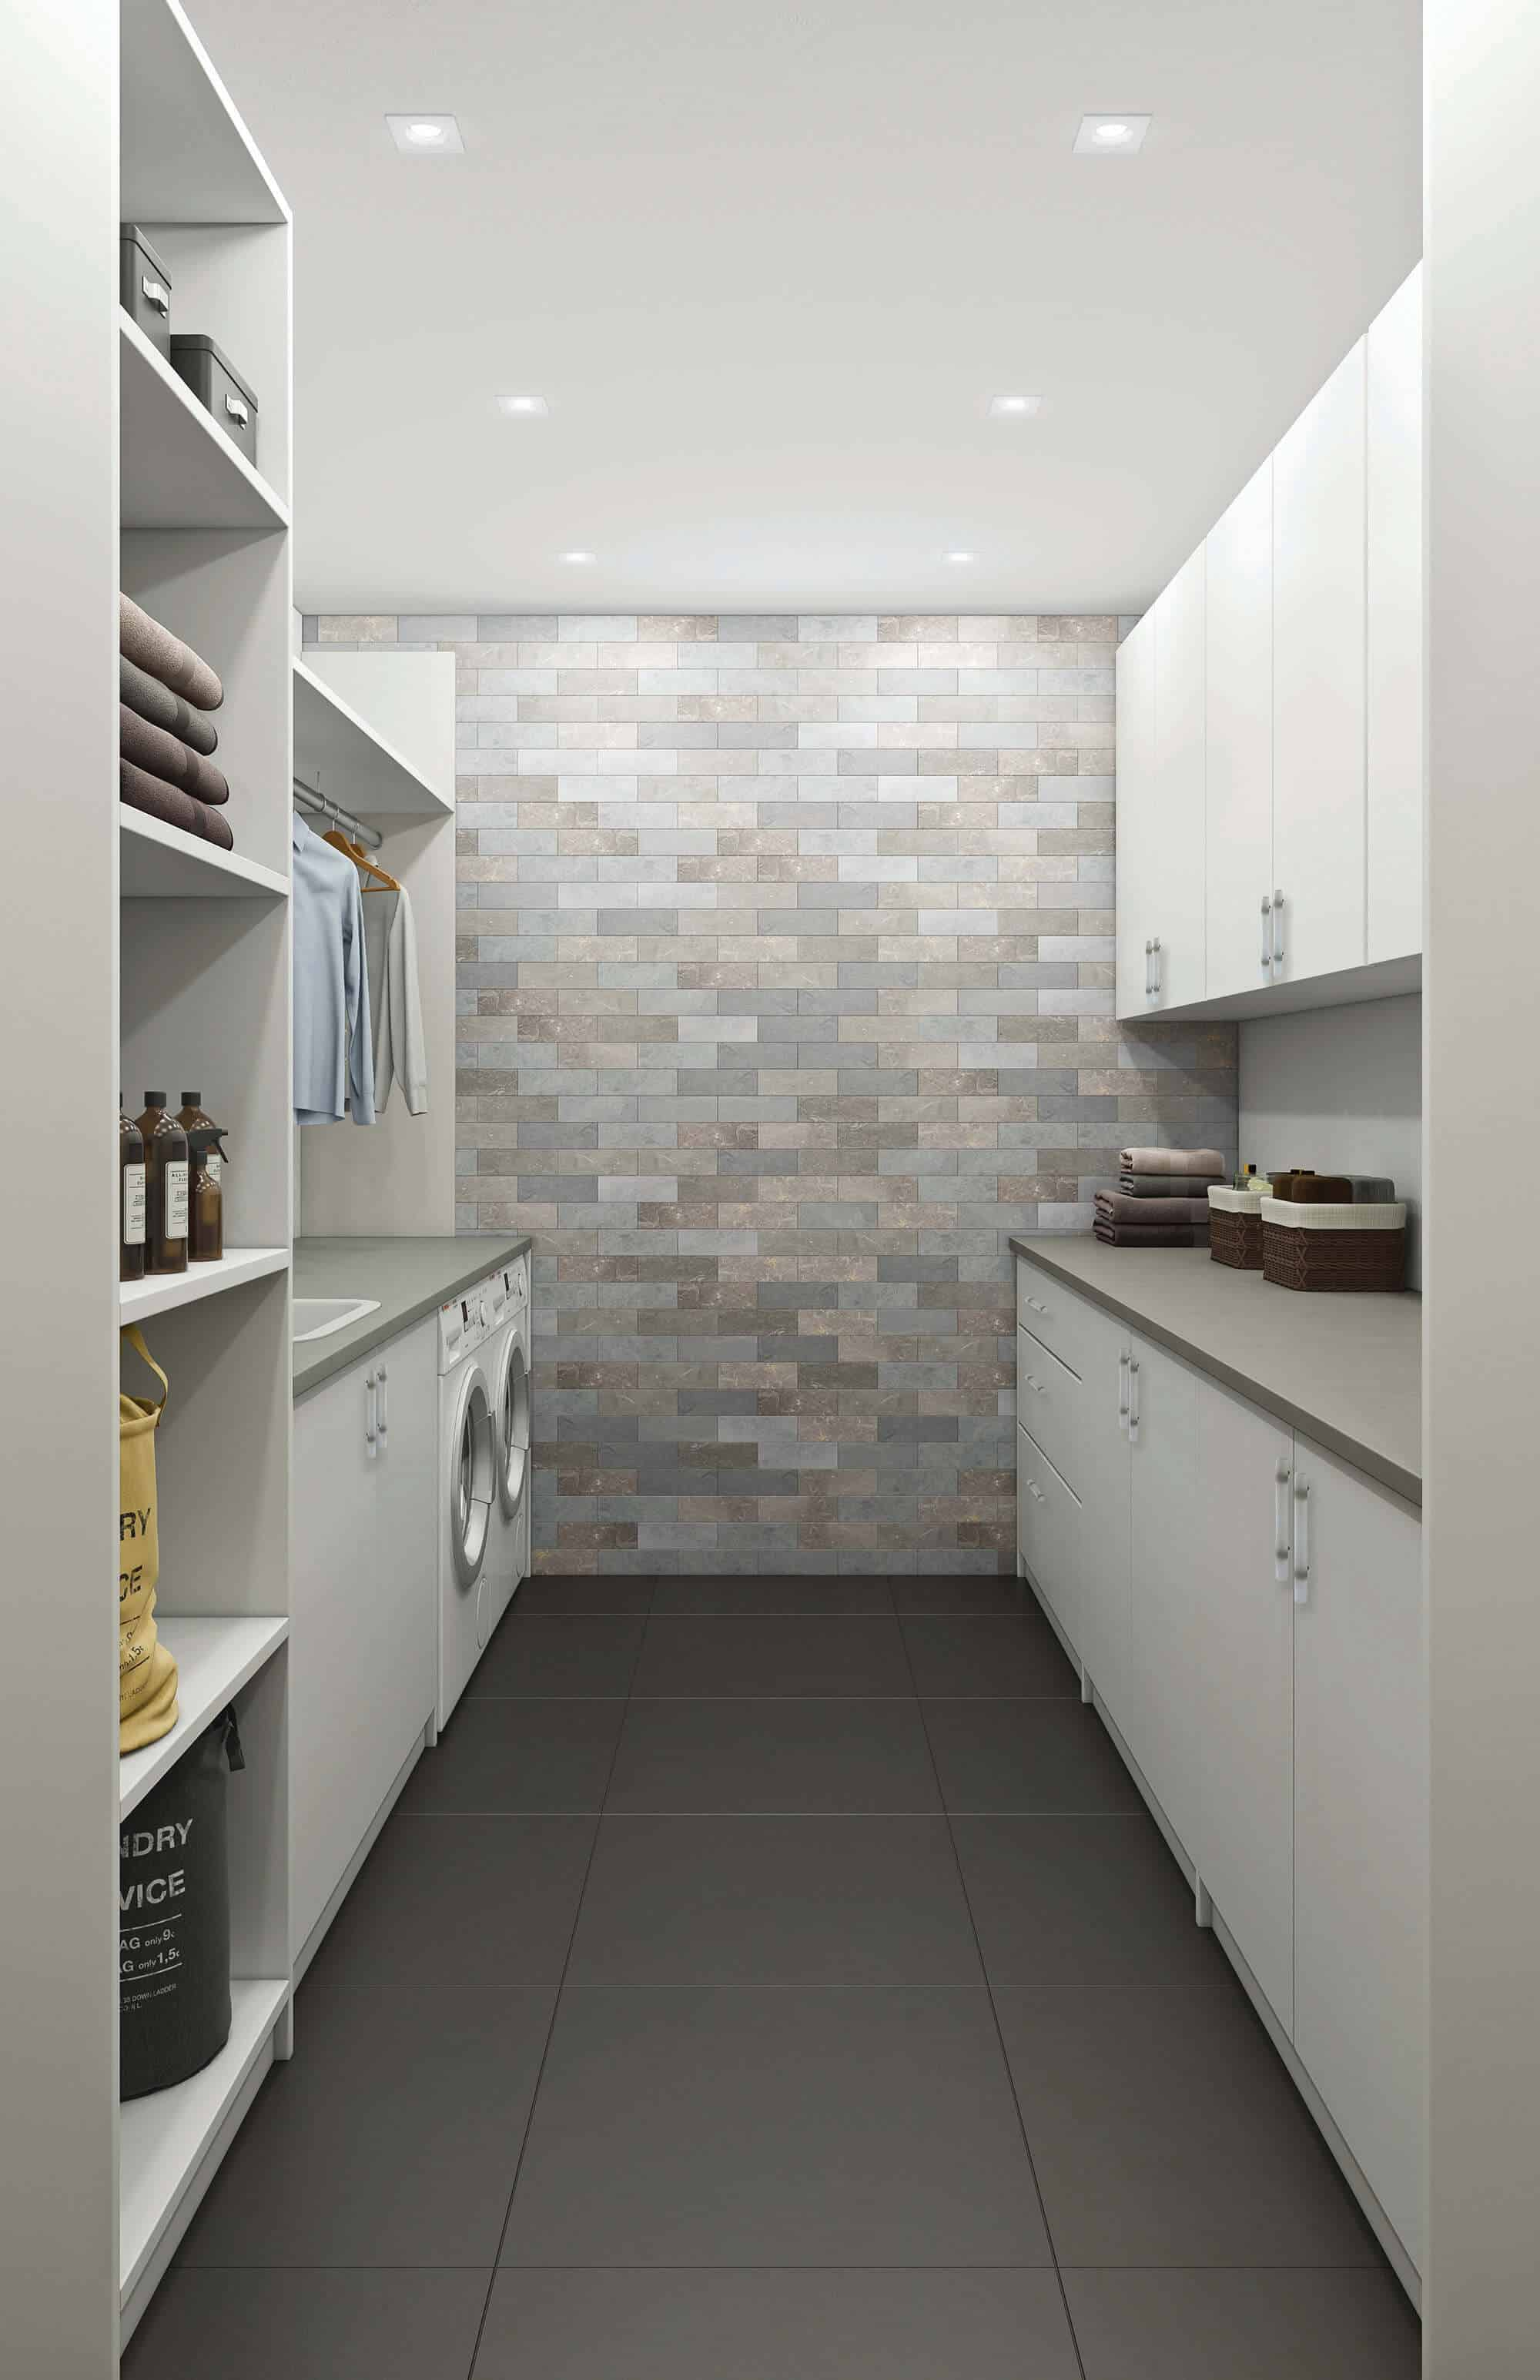 Stock Room Design: Laundry Closets, Laundry Room Cabinets And Storage Solutions